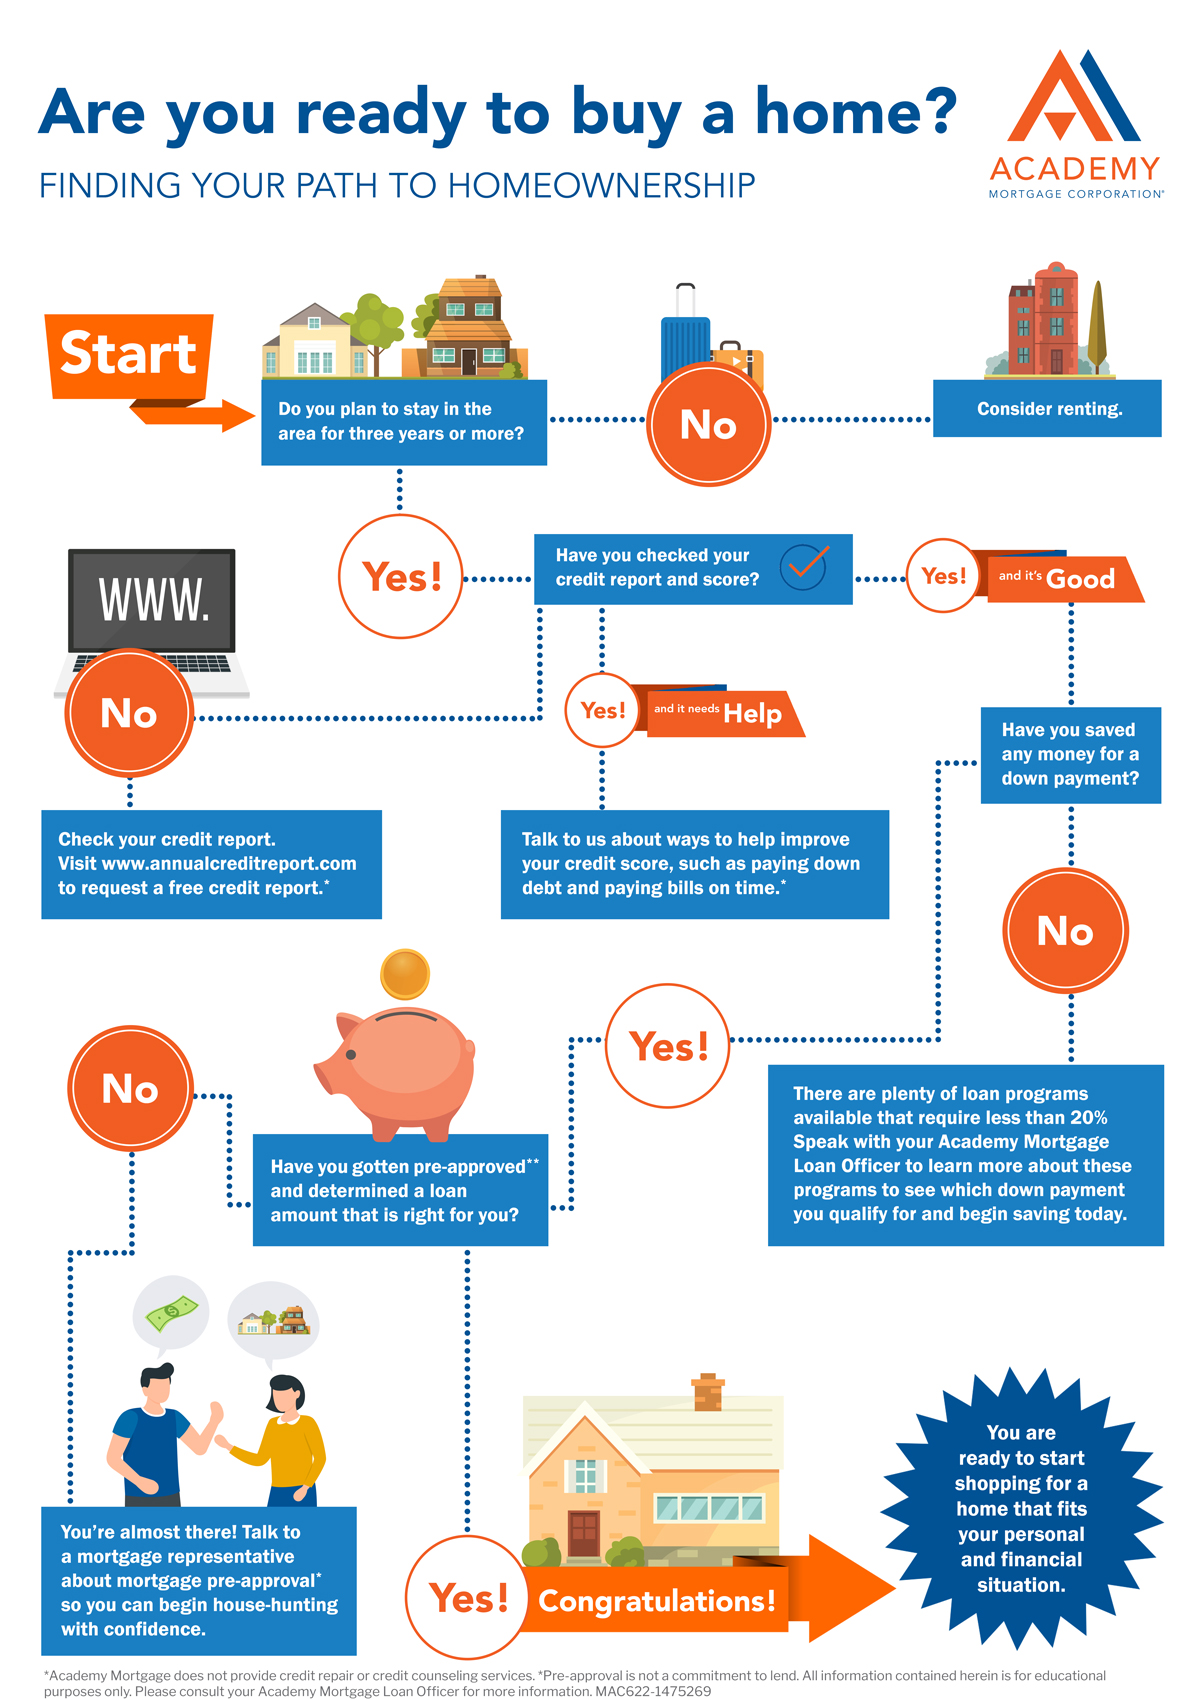 Finding Your Path to Homeownership Infographic